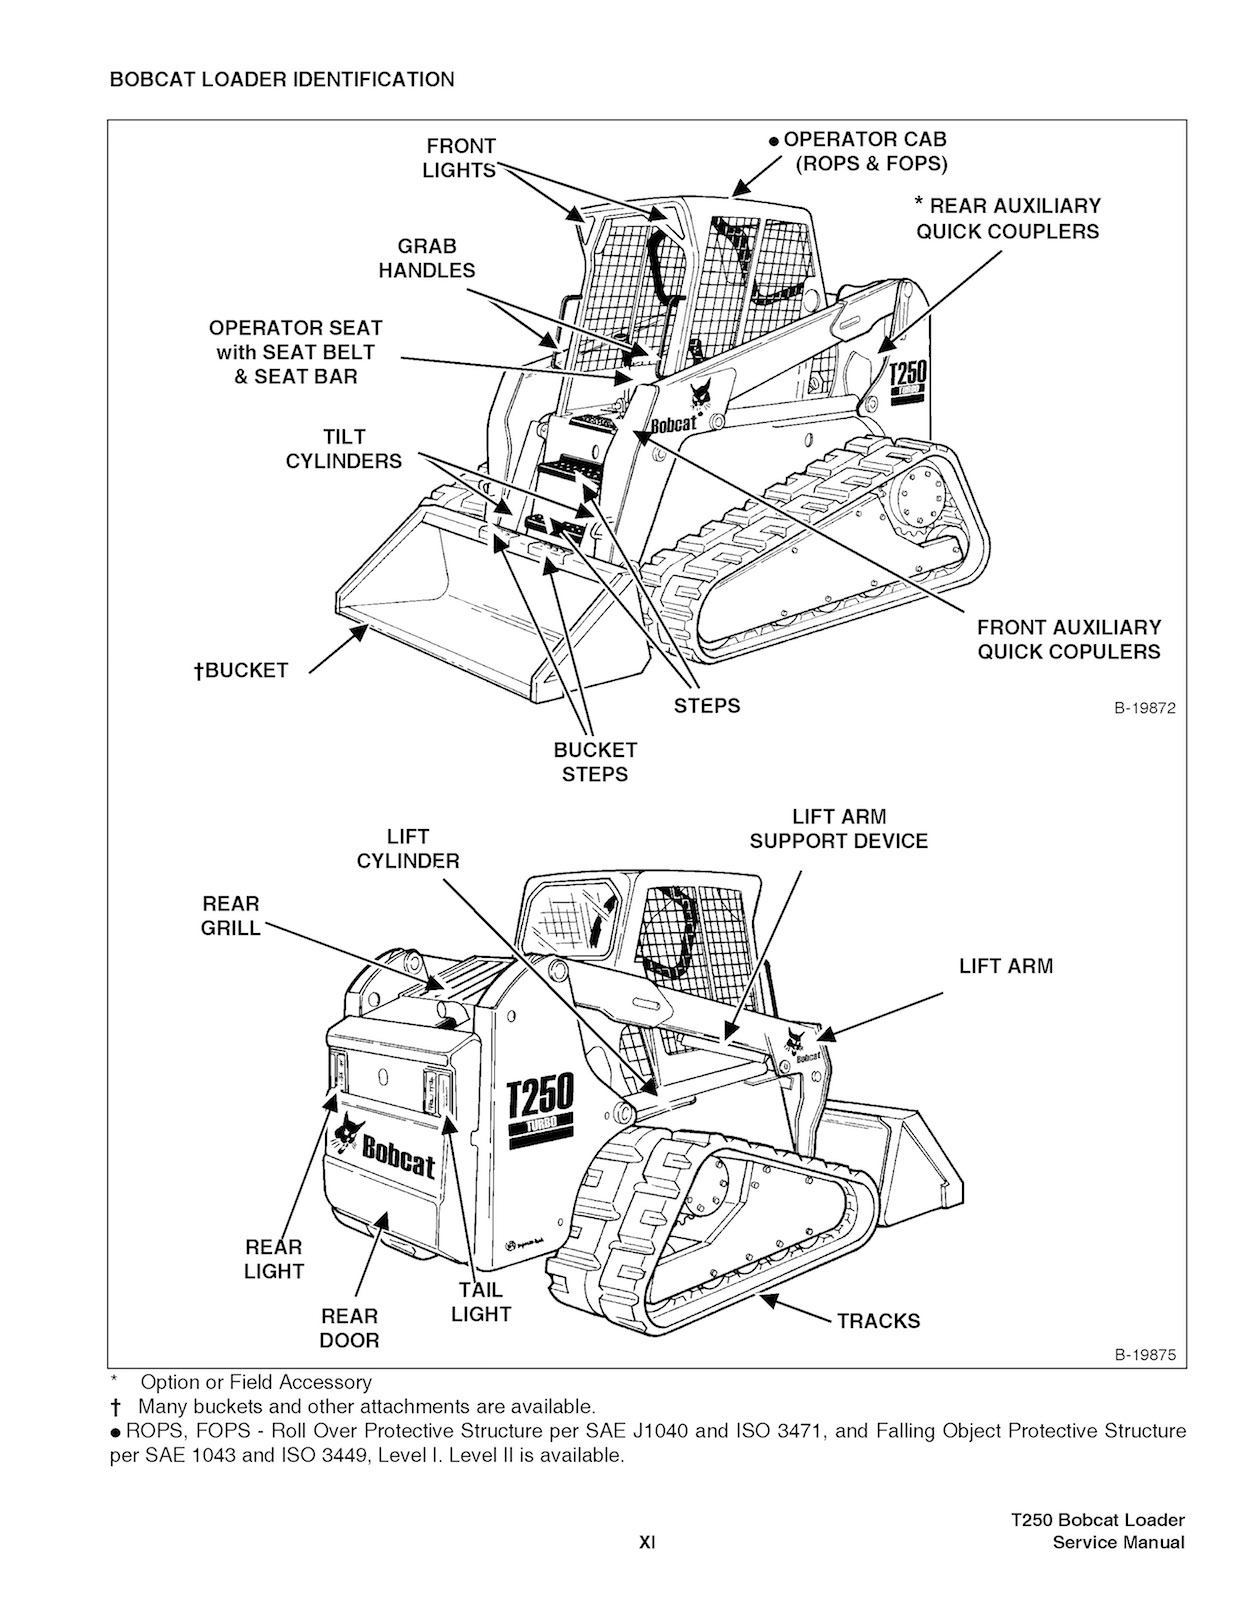 medium resolution of bobcat t250 parts diagram wiring diagram used bobcat t 250 parts catalog bobcat t250 parts diagram